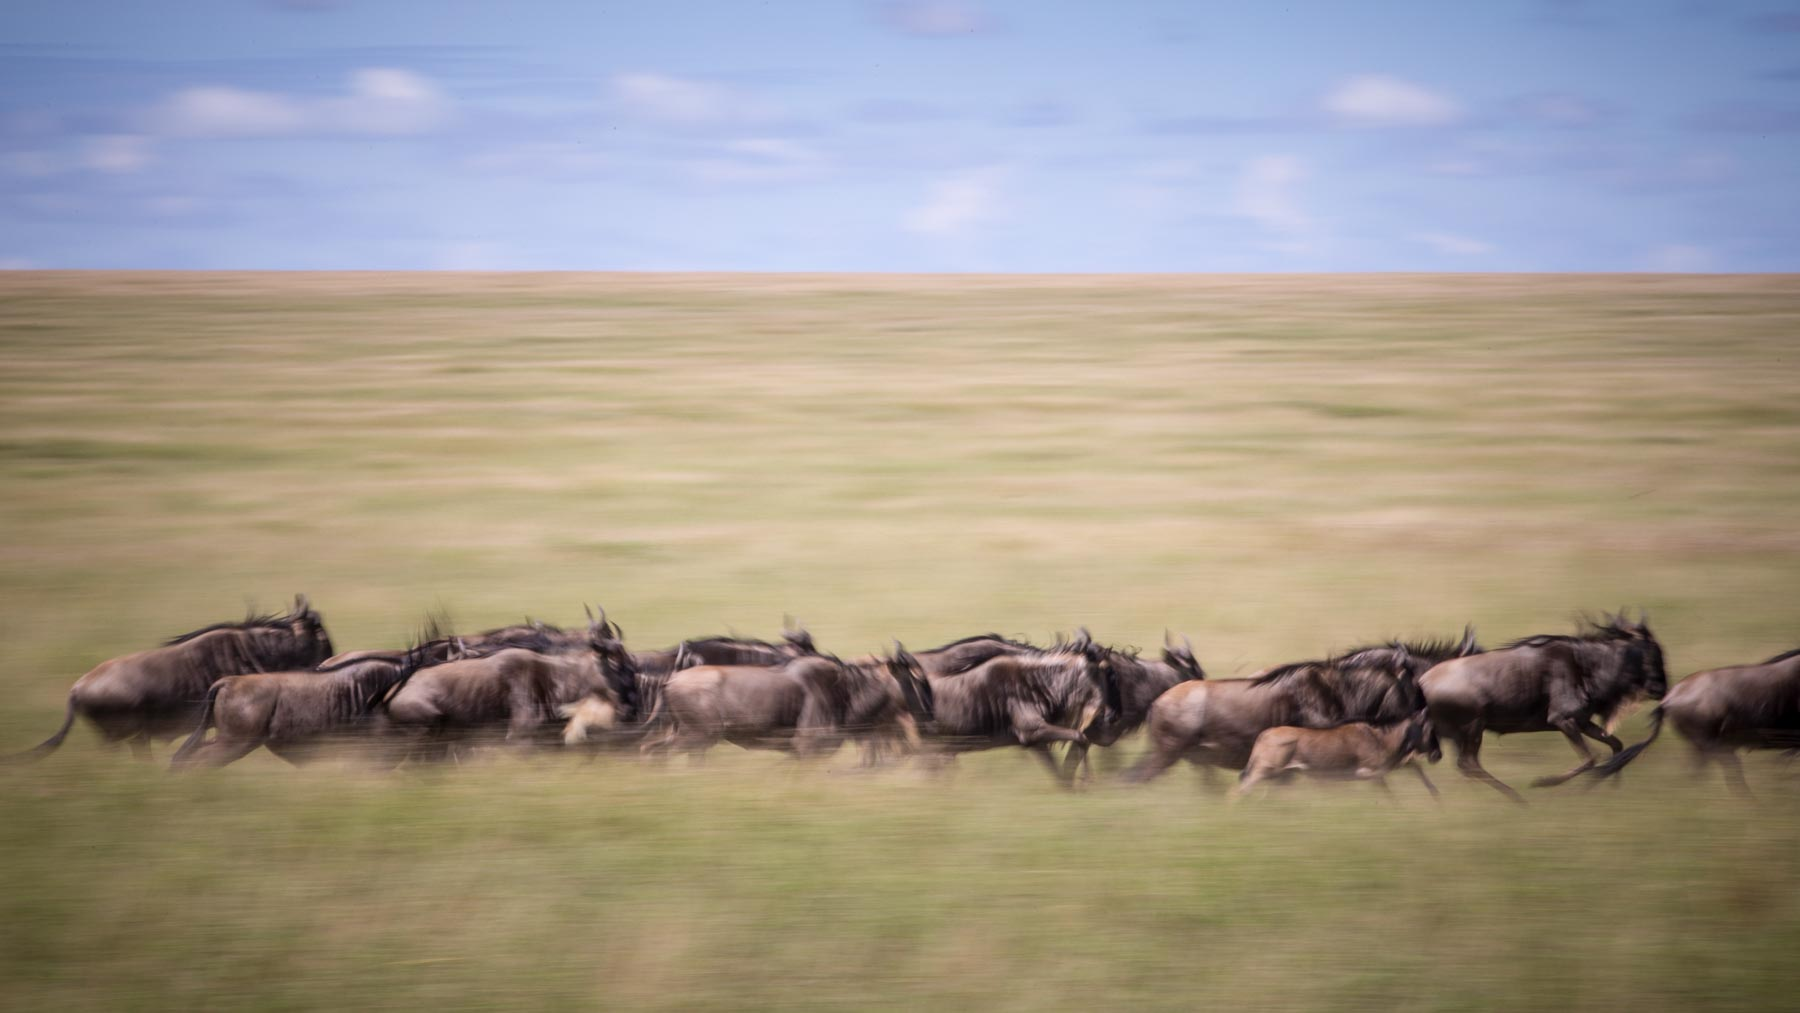 Wildebeests in the Great Migration